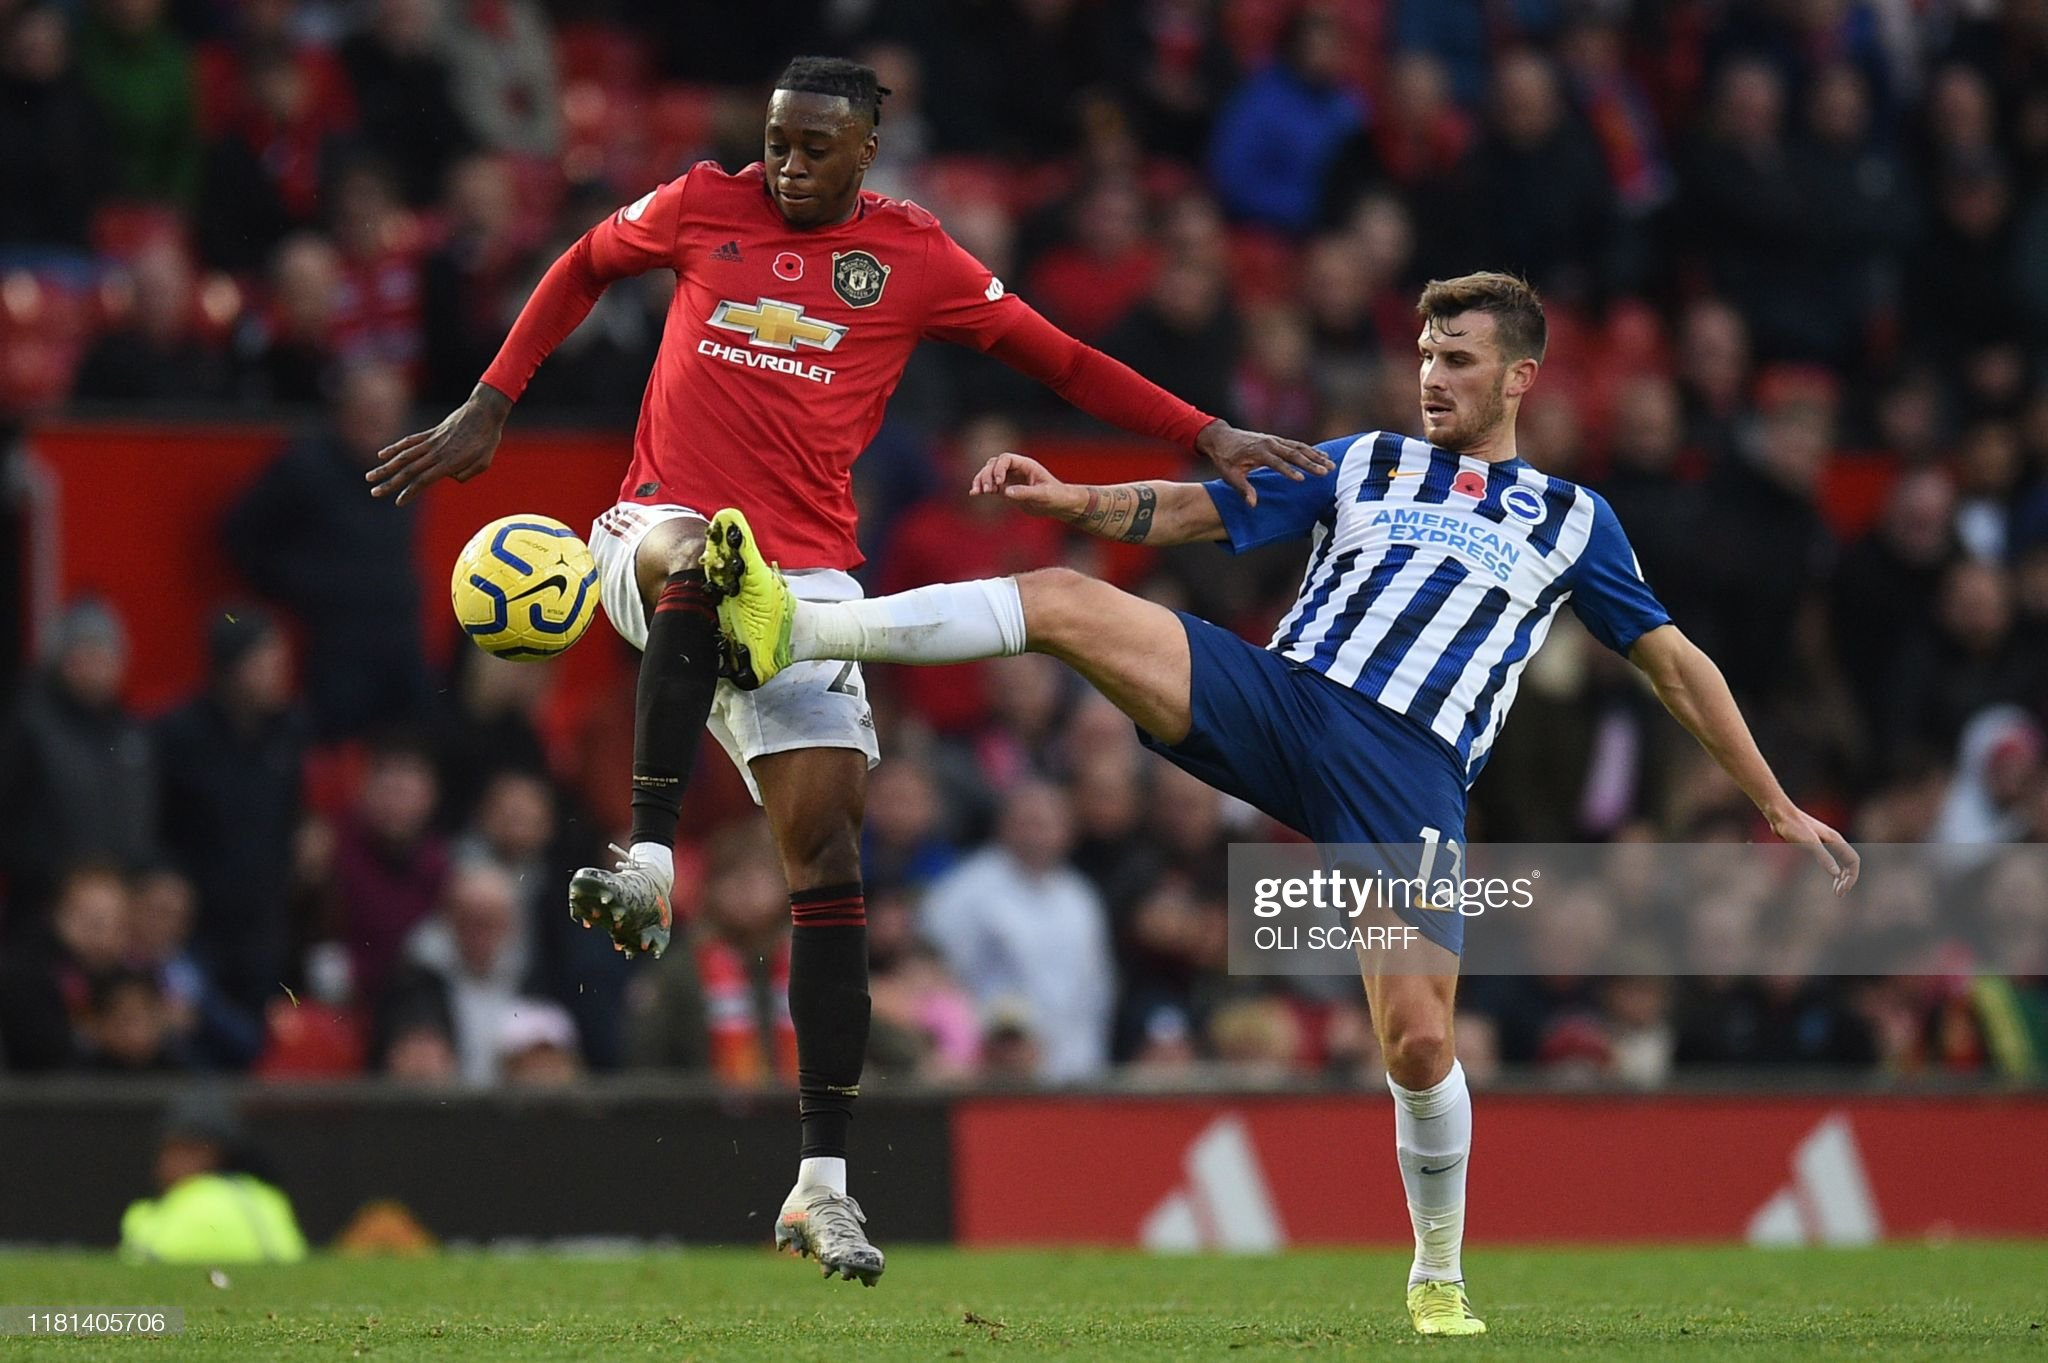 Brighton vs Manchester United preview, prediction and odds